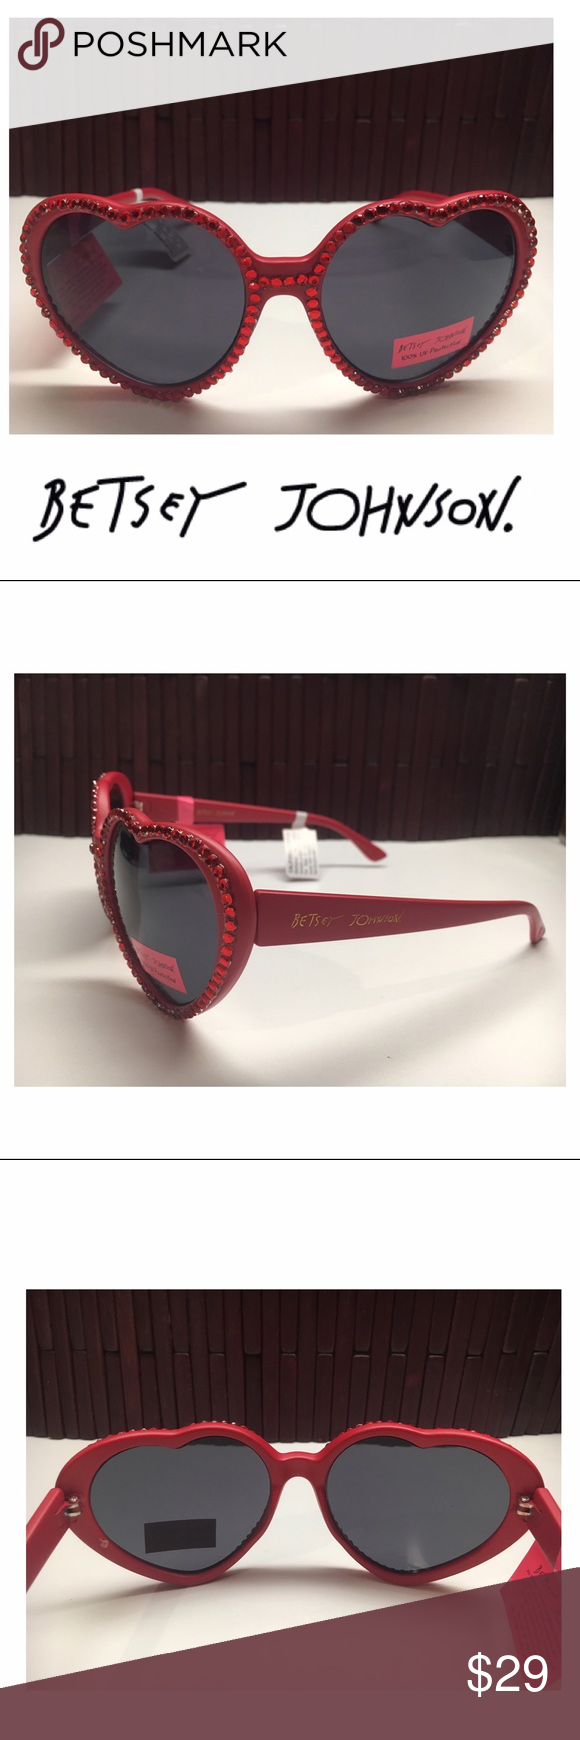 ❤️NEW! Betsey Johnson Rhinestone Heart Sunglasses Stand out in these fabulous Betsey Johnson rhinestone heart shaped sunglasses!                   Frame color: red, Lens color: black.                      Frame material: plastic with resin rhinestones.       Lens type: plastic, 100% UV protection                 Imported, NEW with tags. Accessories Sunglasses